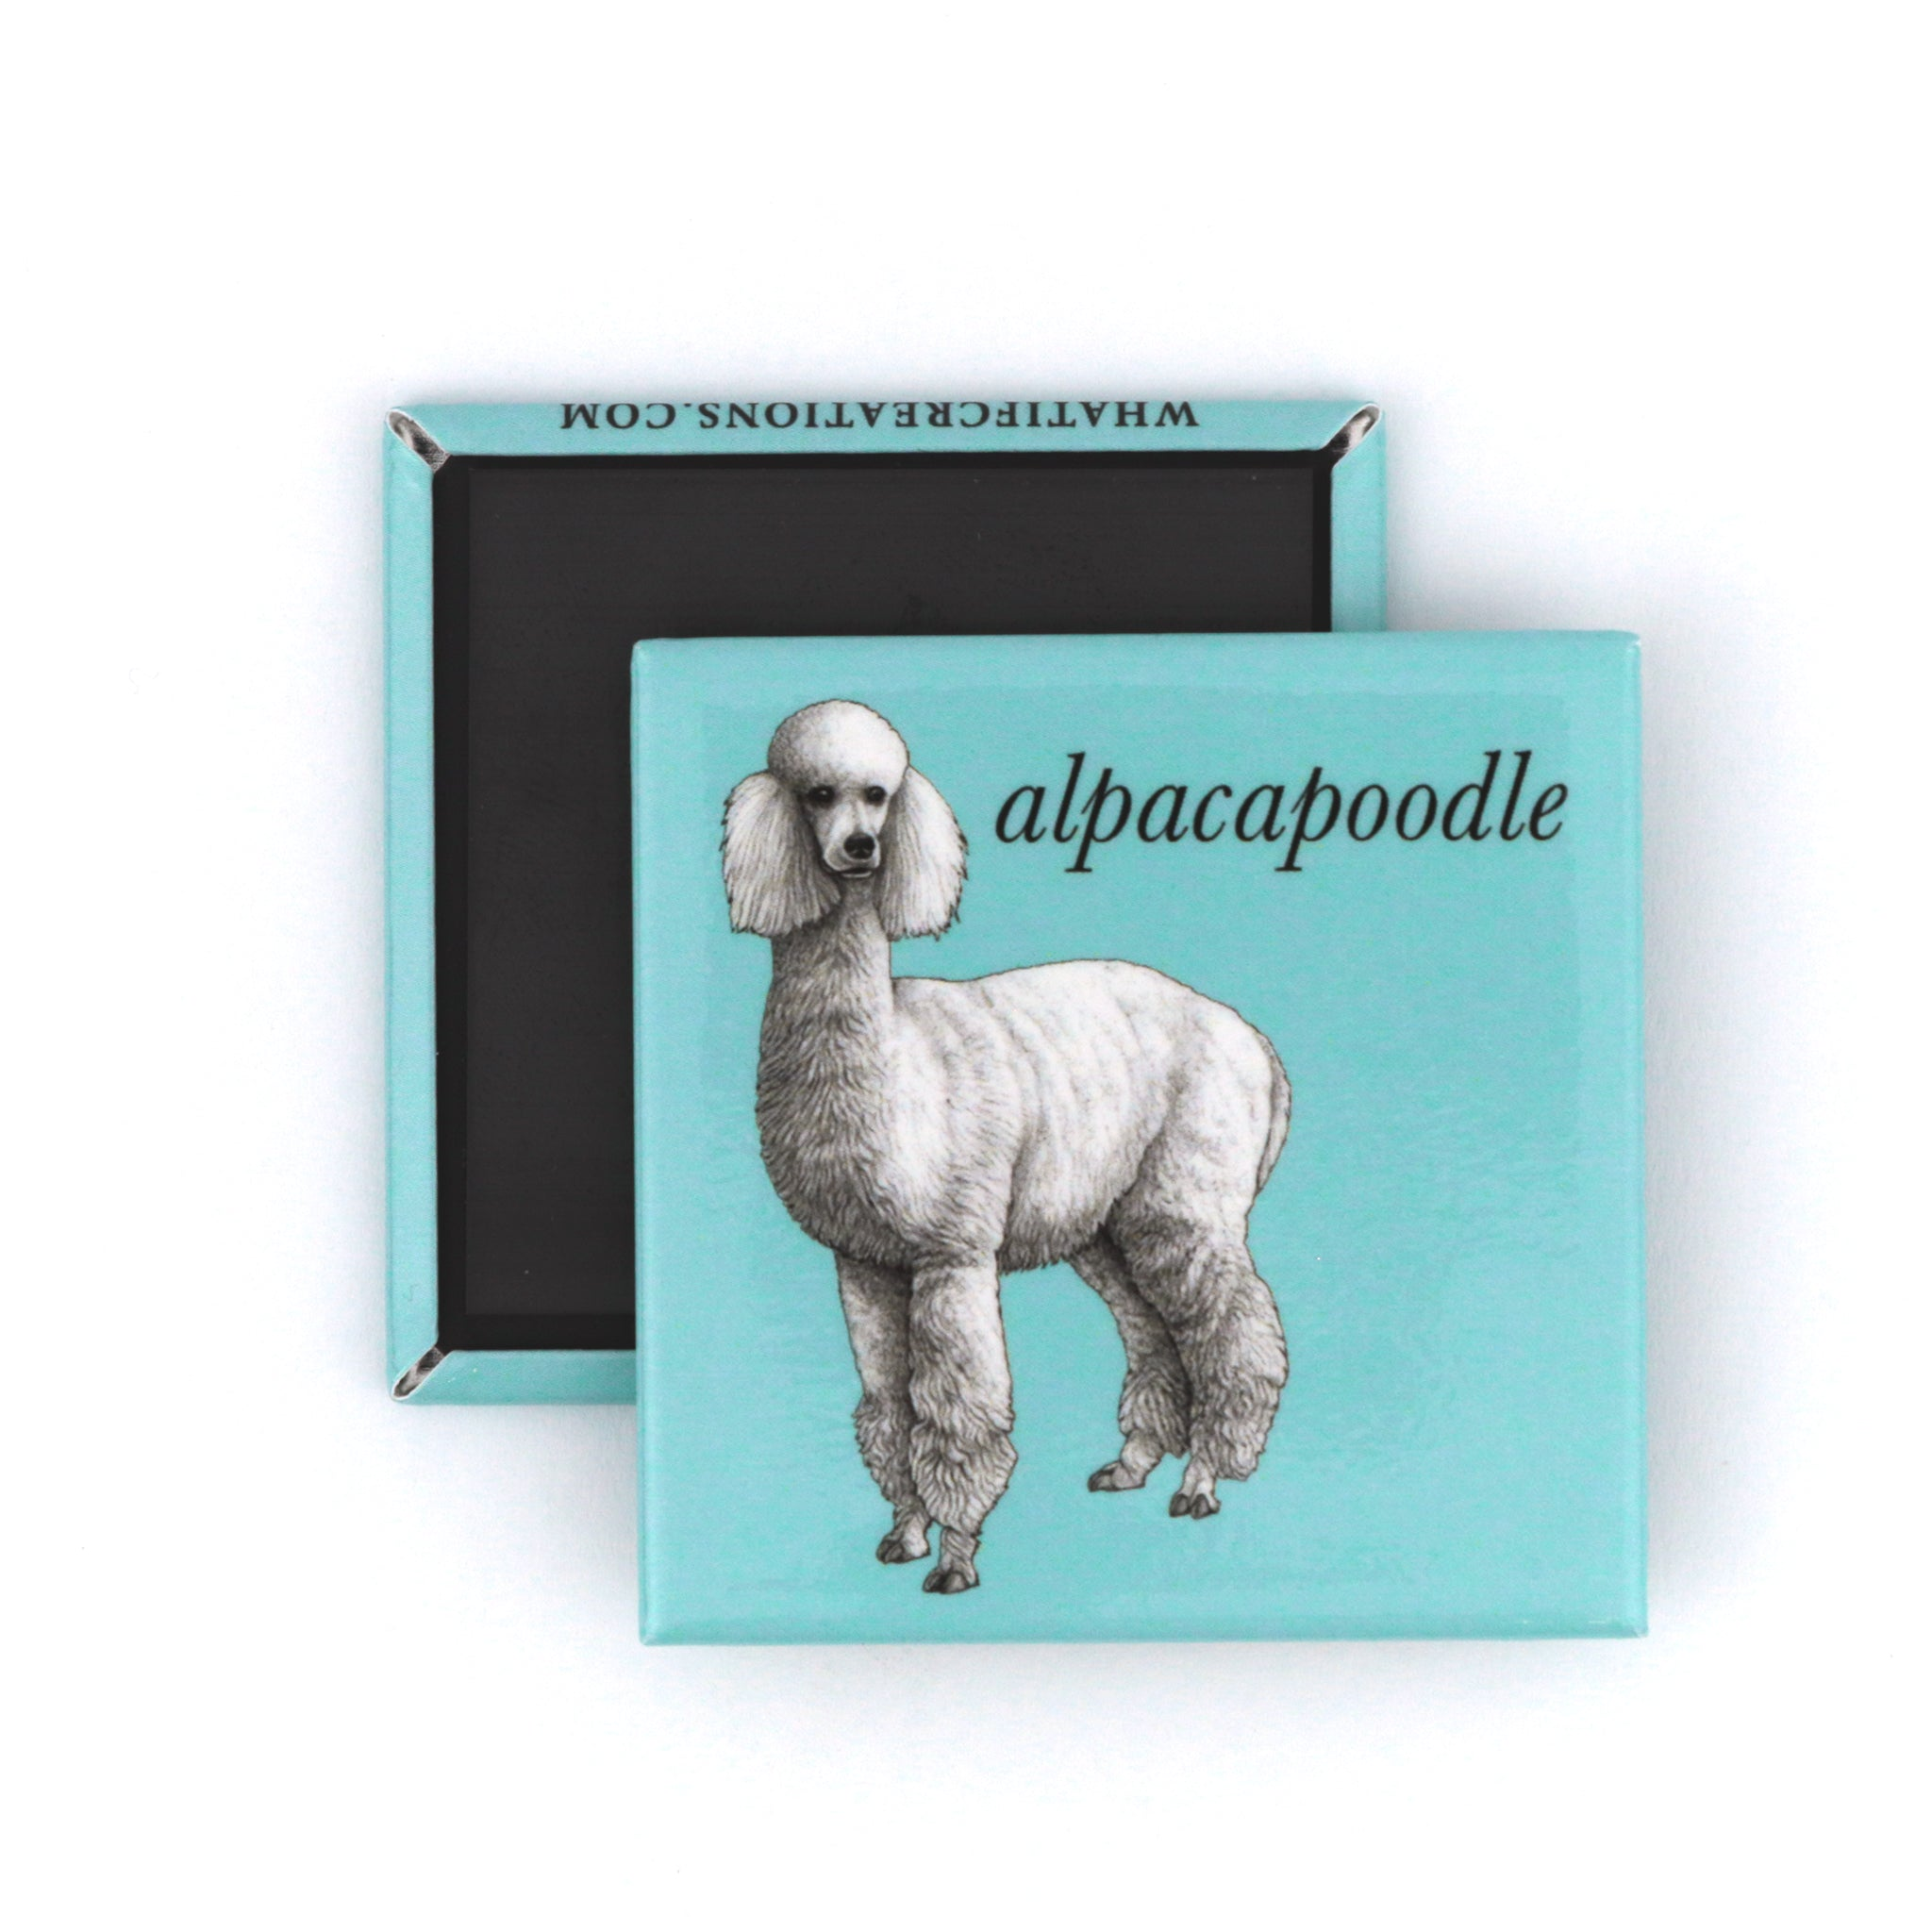 "Alpacapoodle 2"" Fridge Magnet"